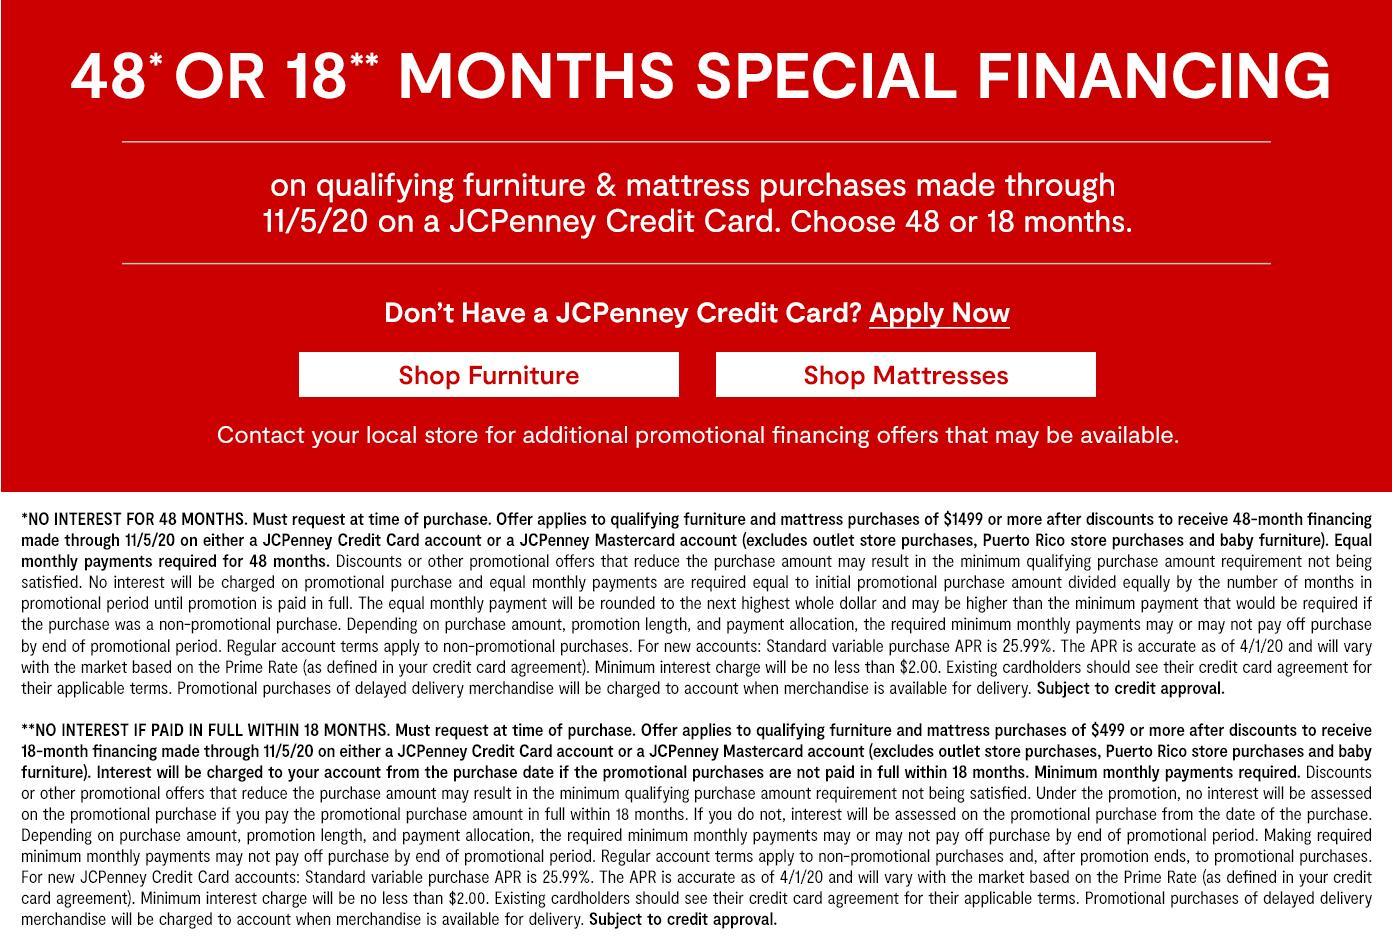 48 or 18 months special financing on qualifying furniture & mattress purchases by 11/5/20 on JCP Credit Card Get Details